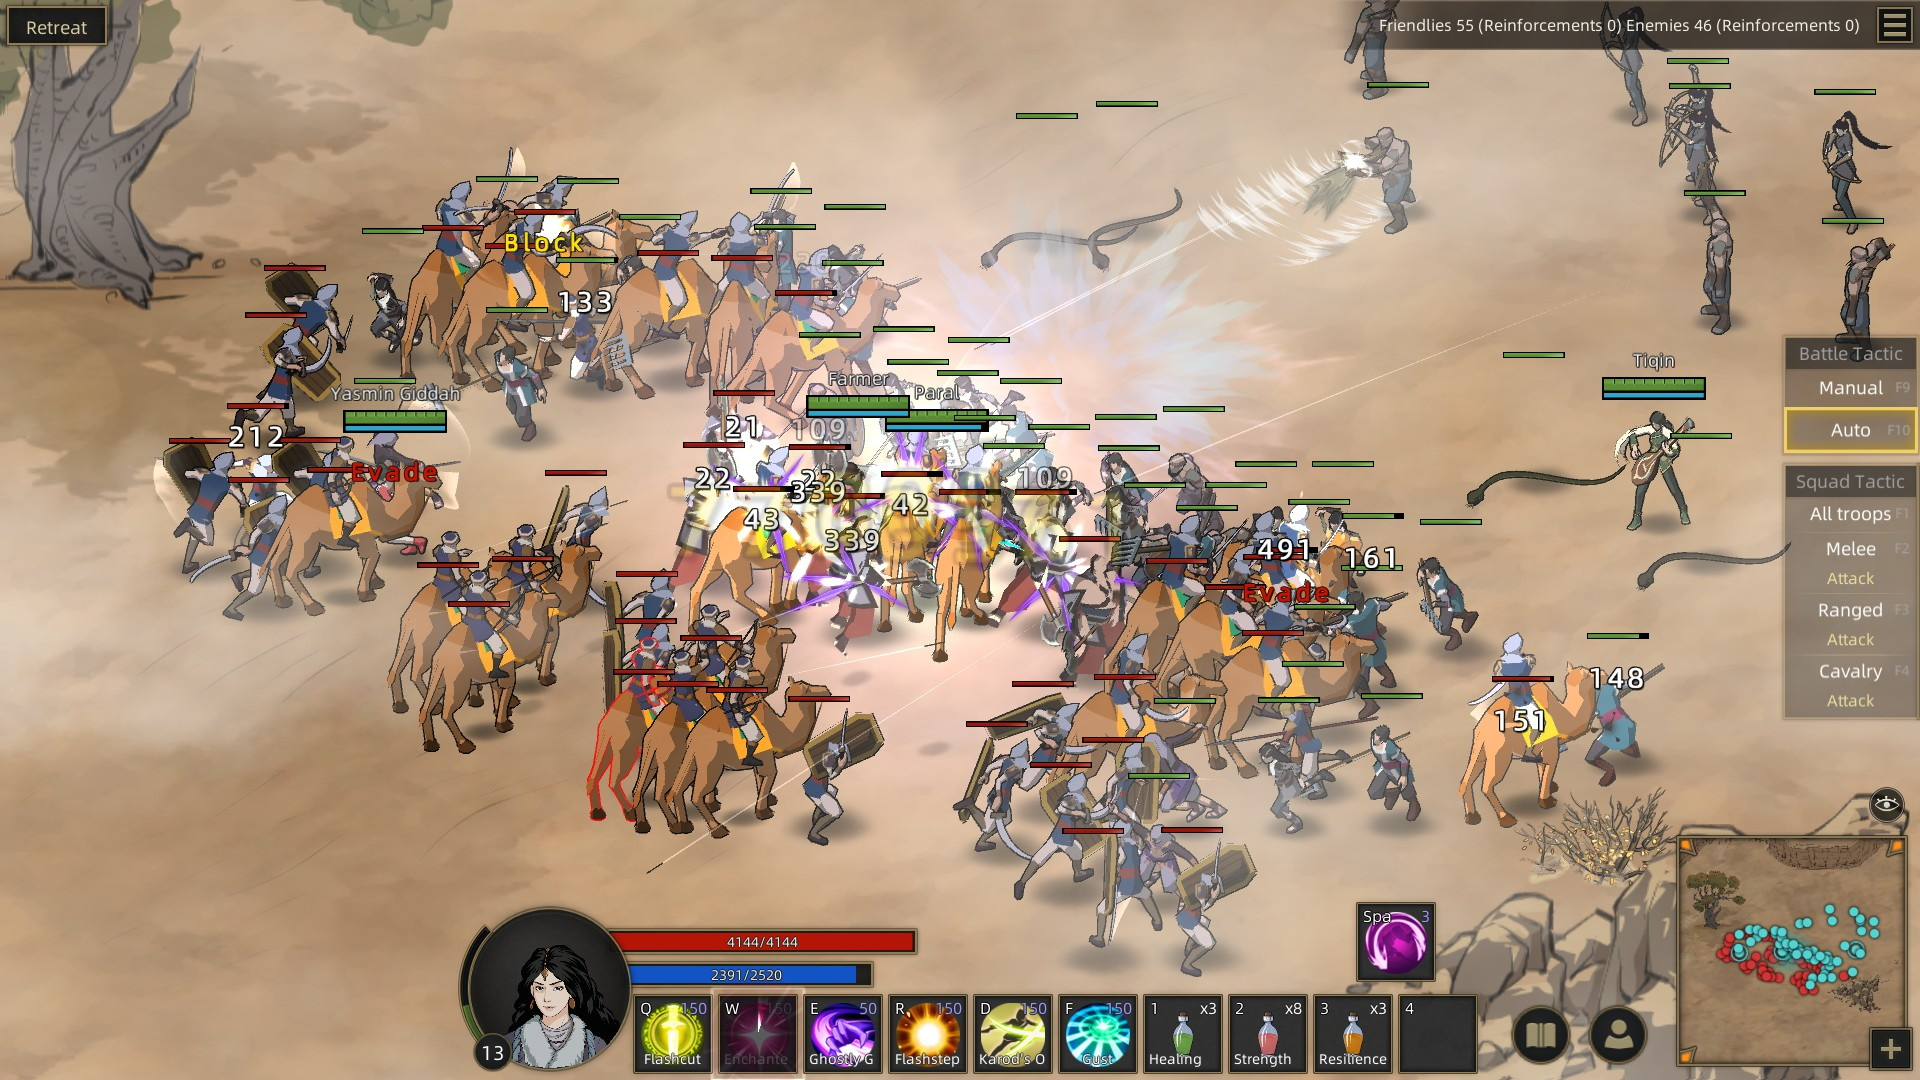 Two forces clash in a chaotic skirmish in a desert. One side, the enemy, is a troop of cavalry riding camels. The other side is infantry, but is backed up by archers and, yes, attack snakes